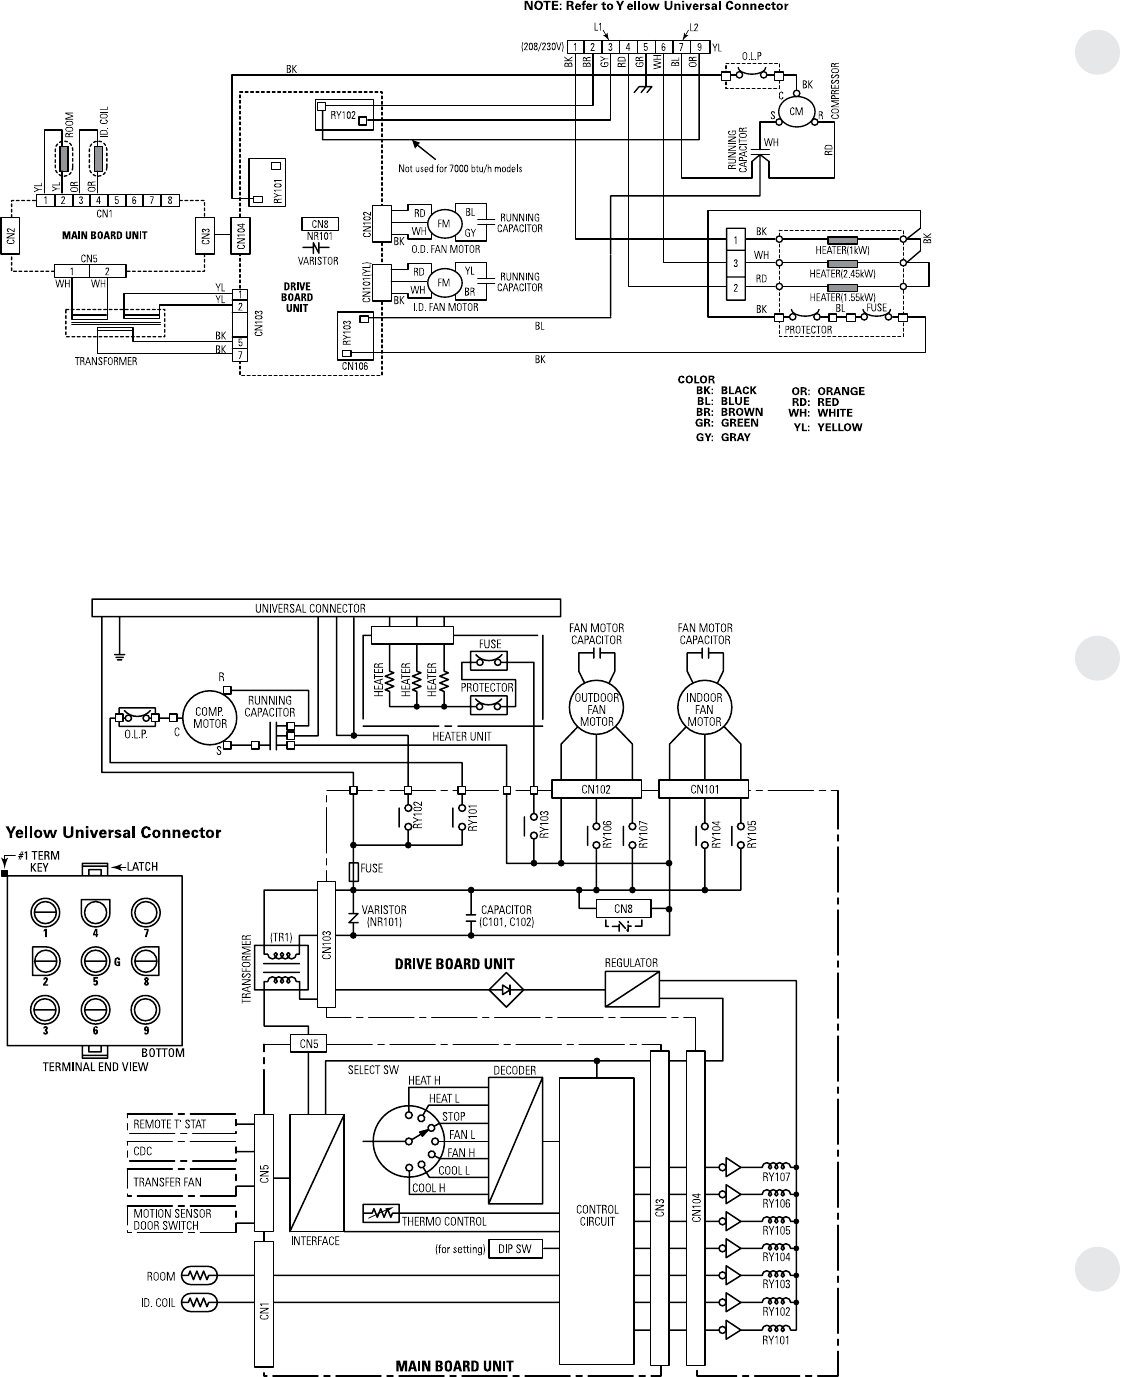 78909c28 266e 4c67 8658 5a18368a9129 bg30 page 48 of ge air conditioner 2800 user guide manualsonline com ge air conditioner wiring diagram at webbmarketing.co